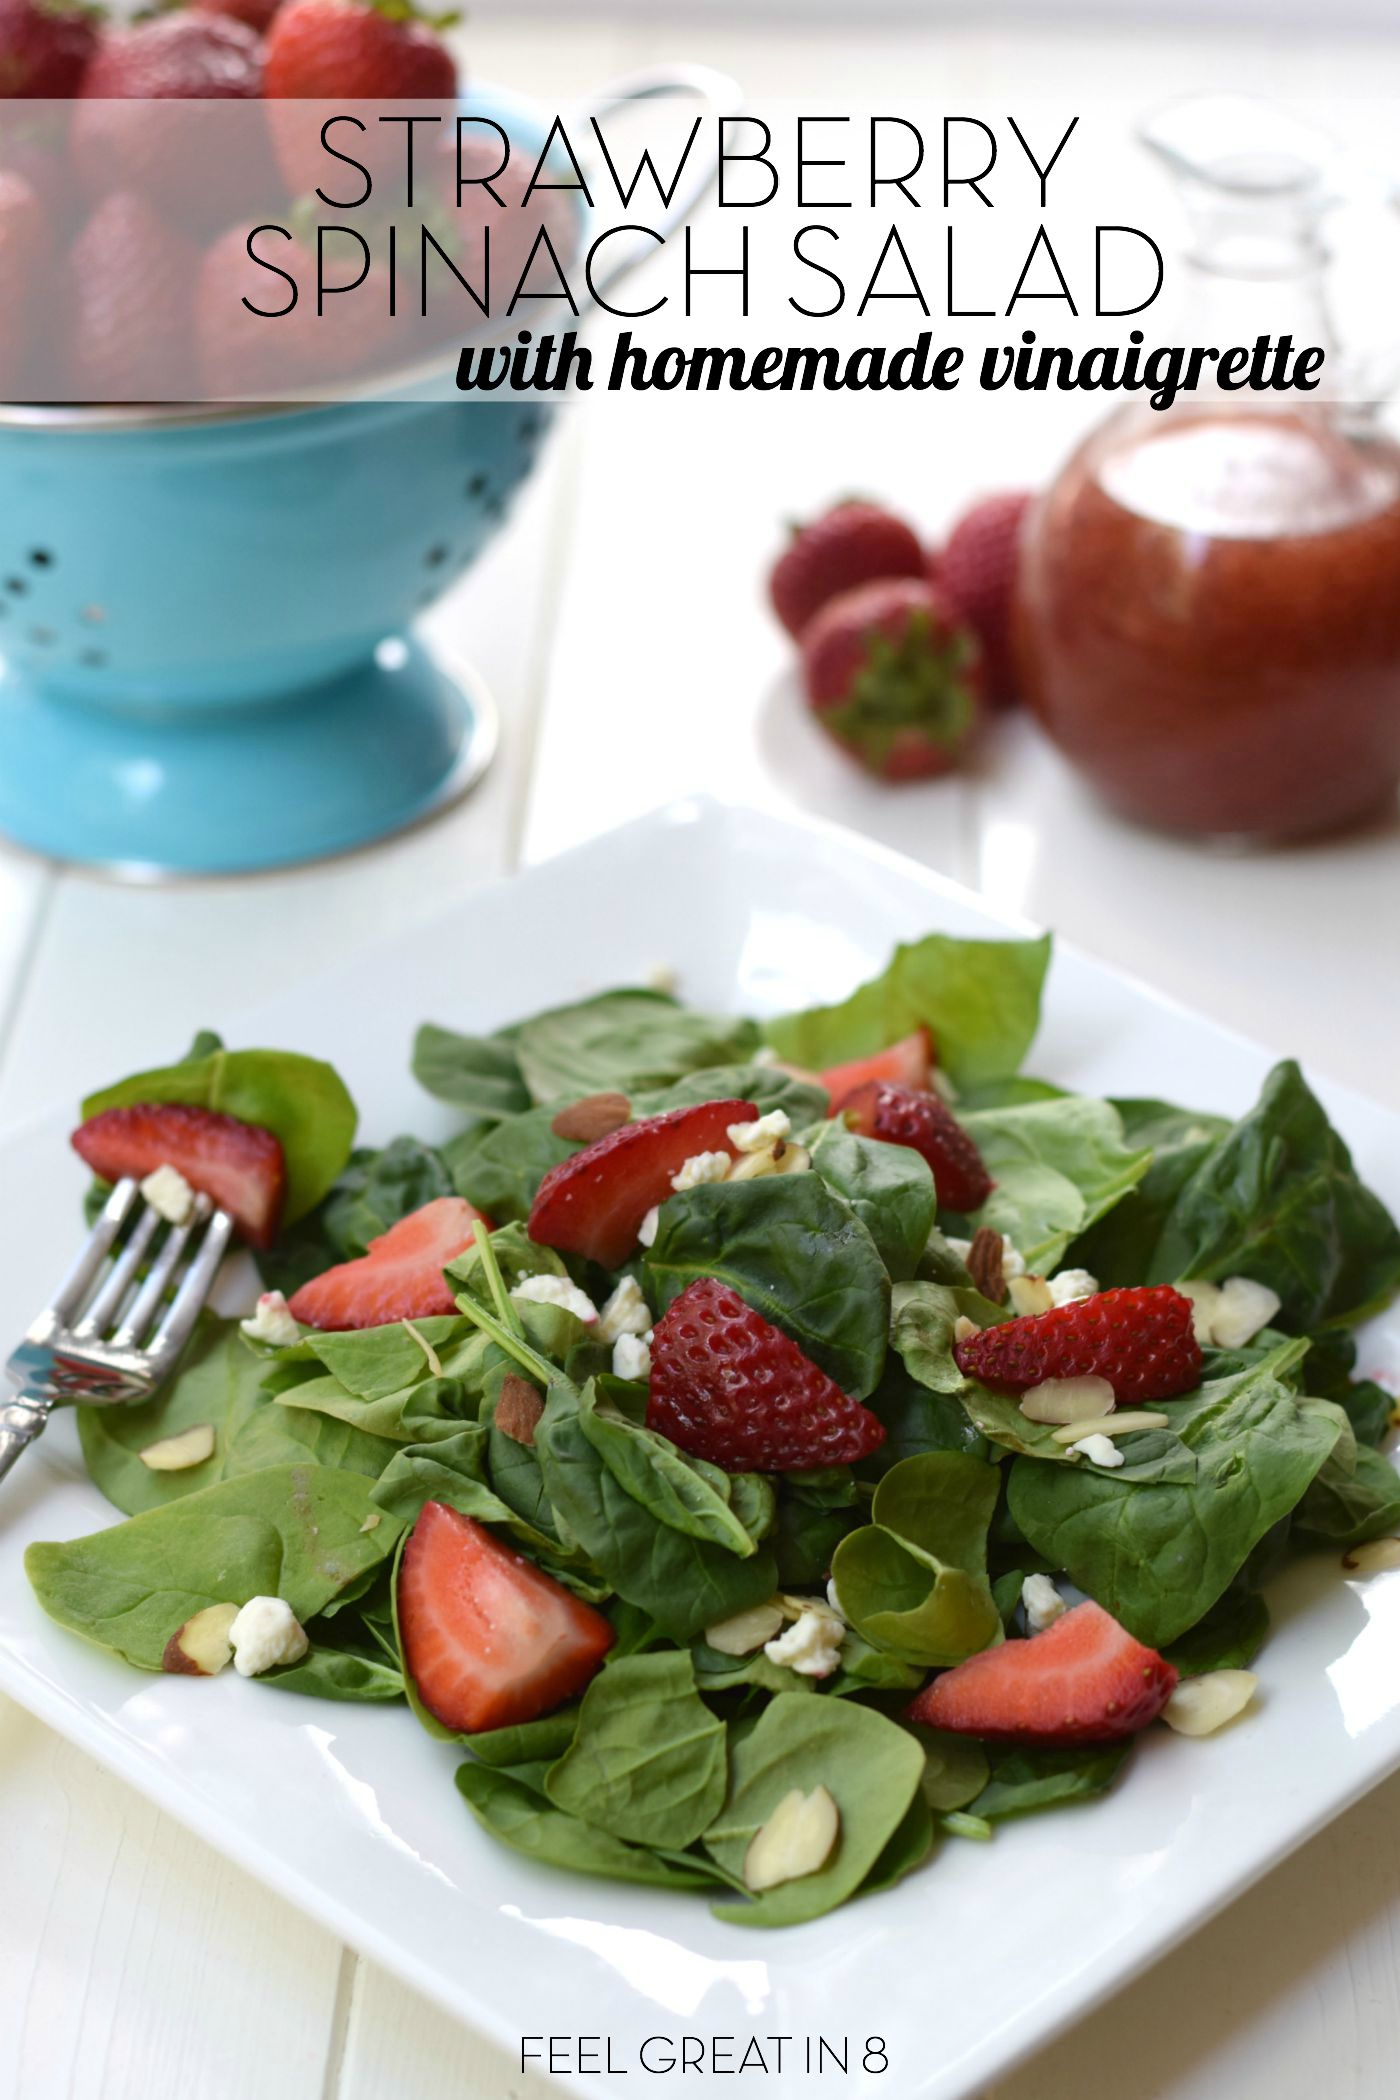 Strawberry Spinach Salad & Homemade Vinaigrette